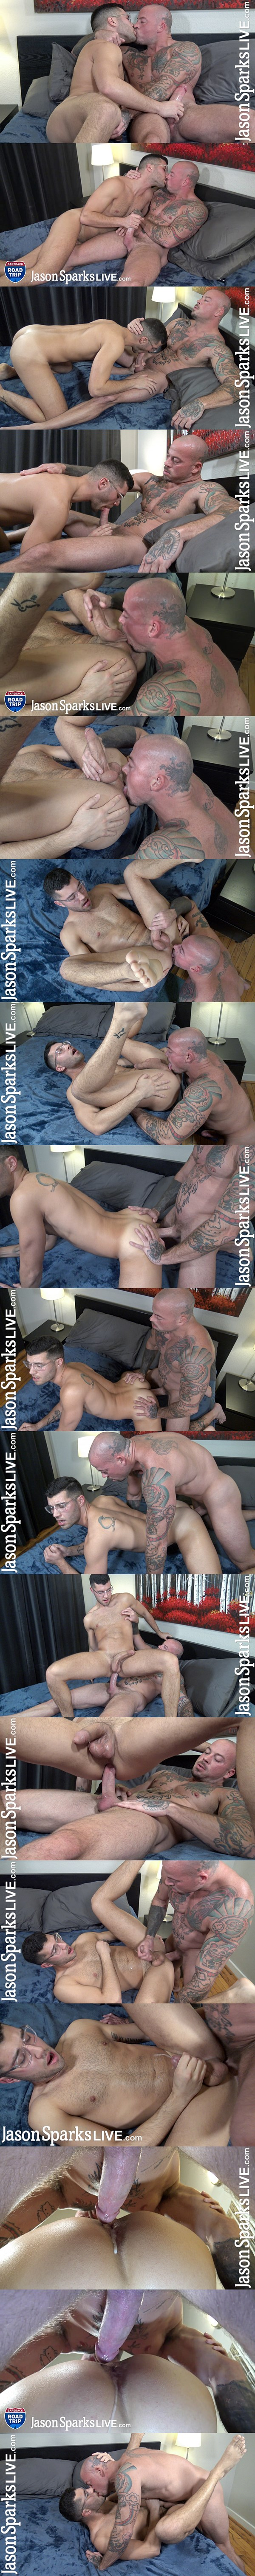 Veteran gay porn star Sean Duran barebacks newcomer Jeremy George before he fucks the cum out of Jeremy and creampies him in Jeremy's bottoming debut at Jasonsparkslive 01